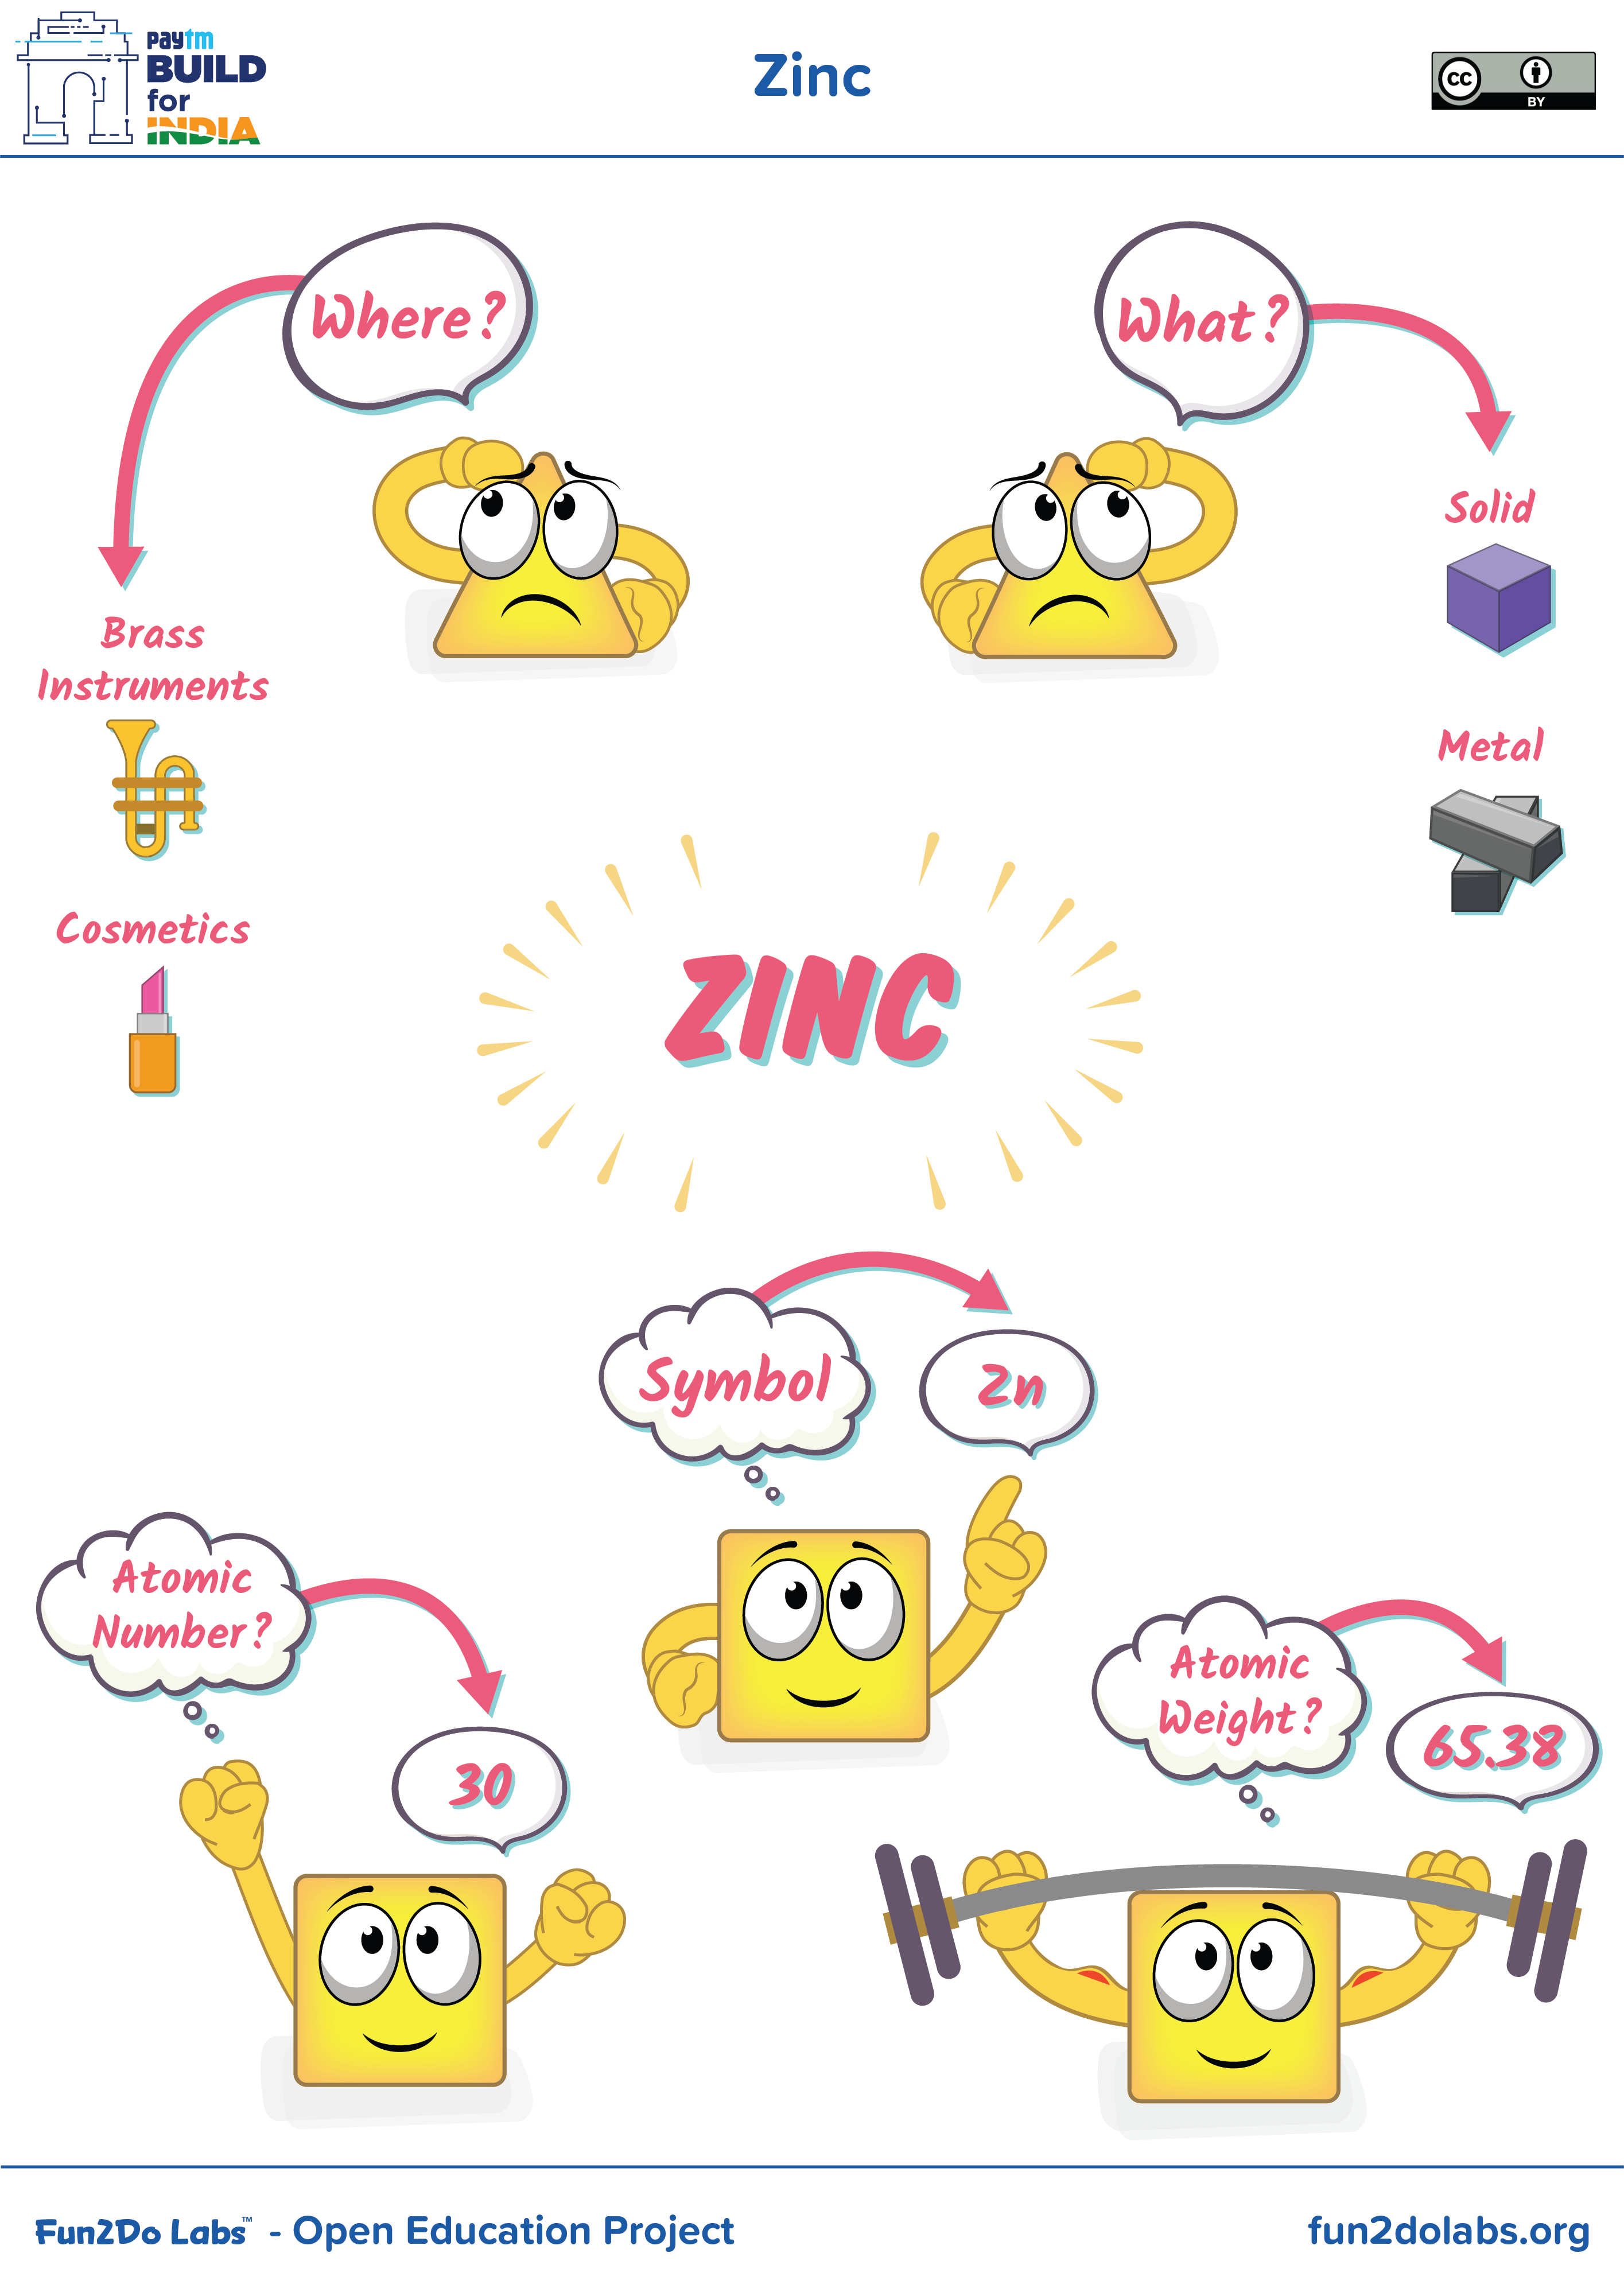 You Can Use This Image For Introducing Zinc To Kids Where Is Zinc